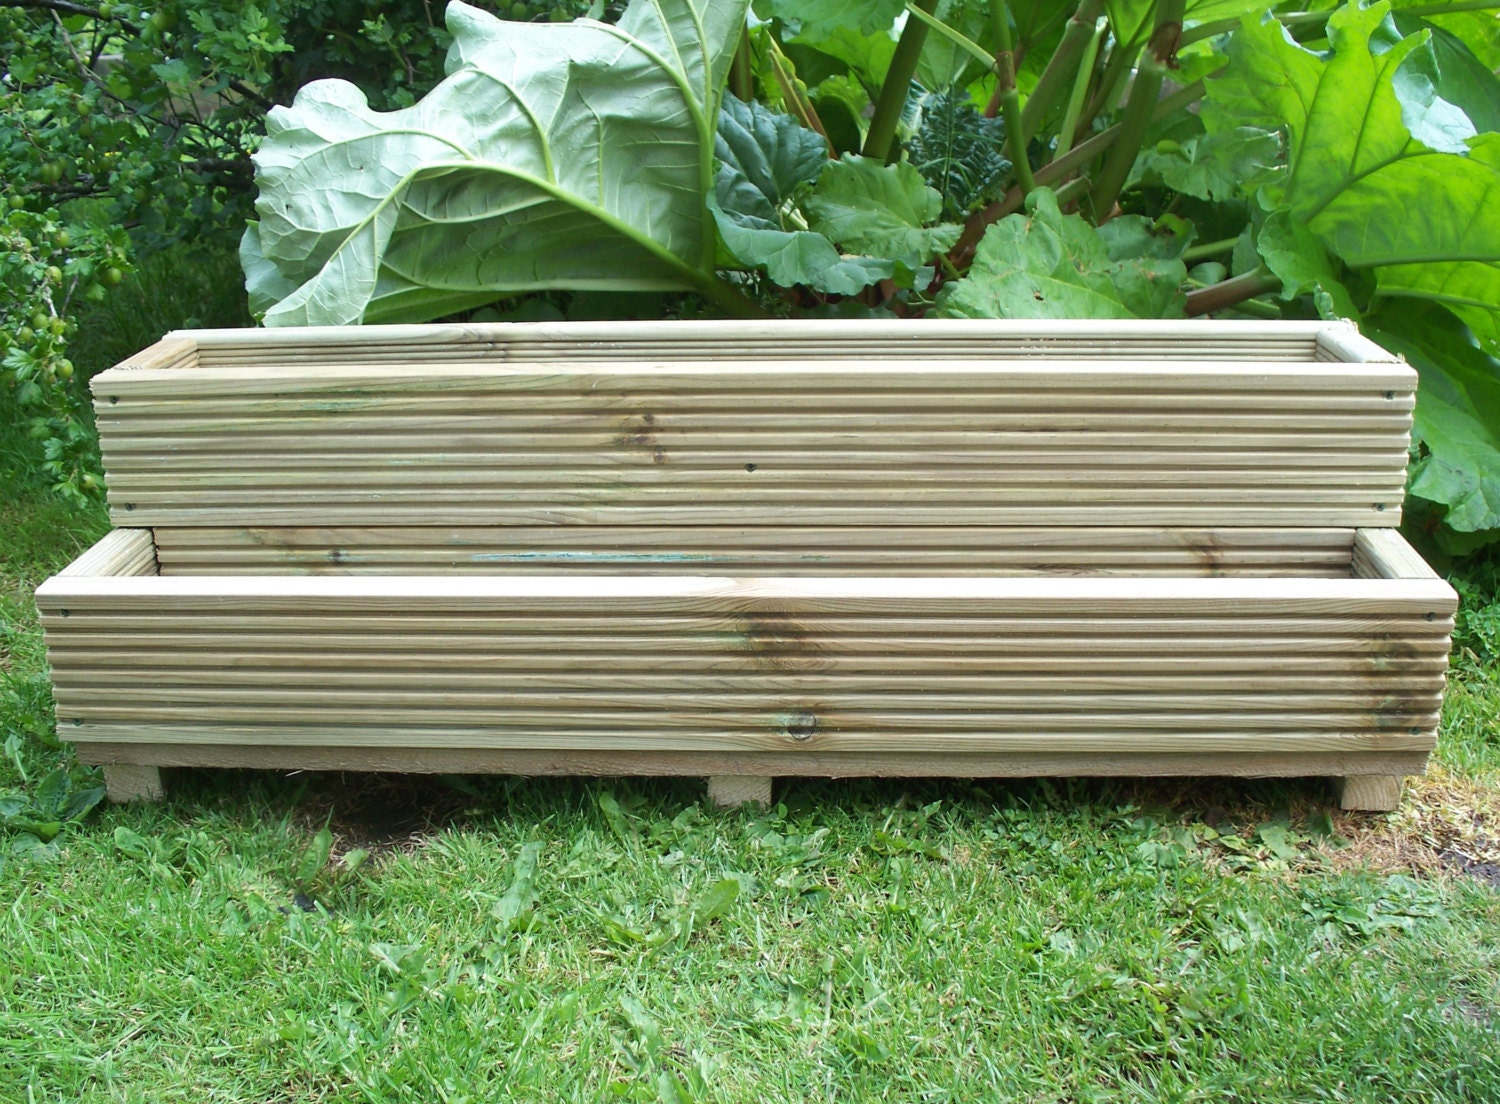 Two tiered tanalised wooden decking garden planter 1000mm for Tanalised timber decking